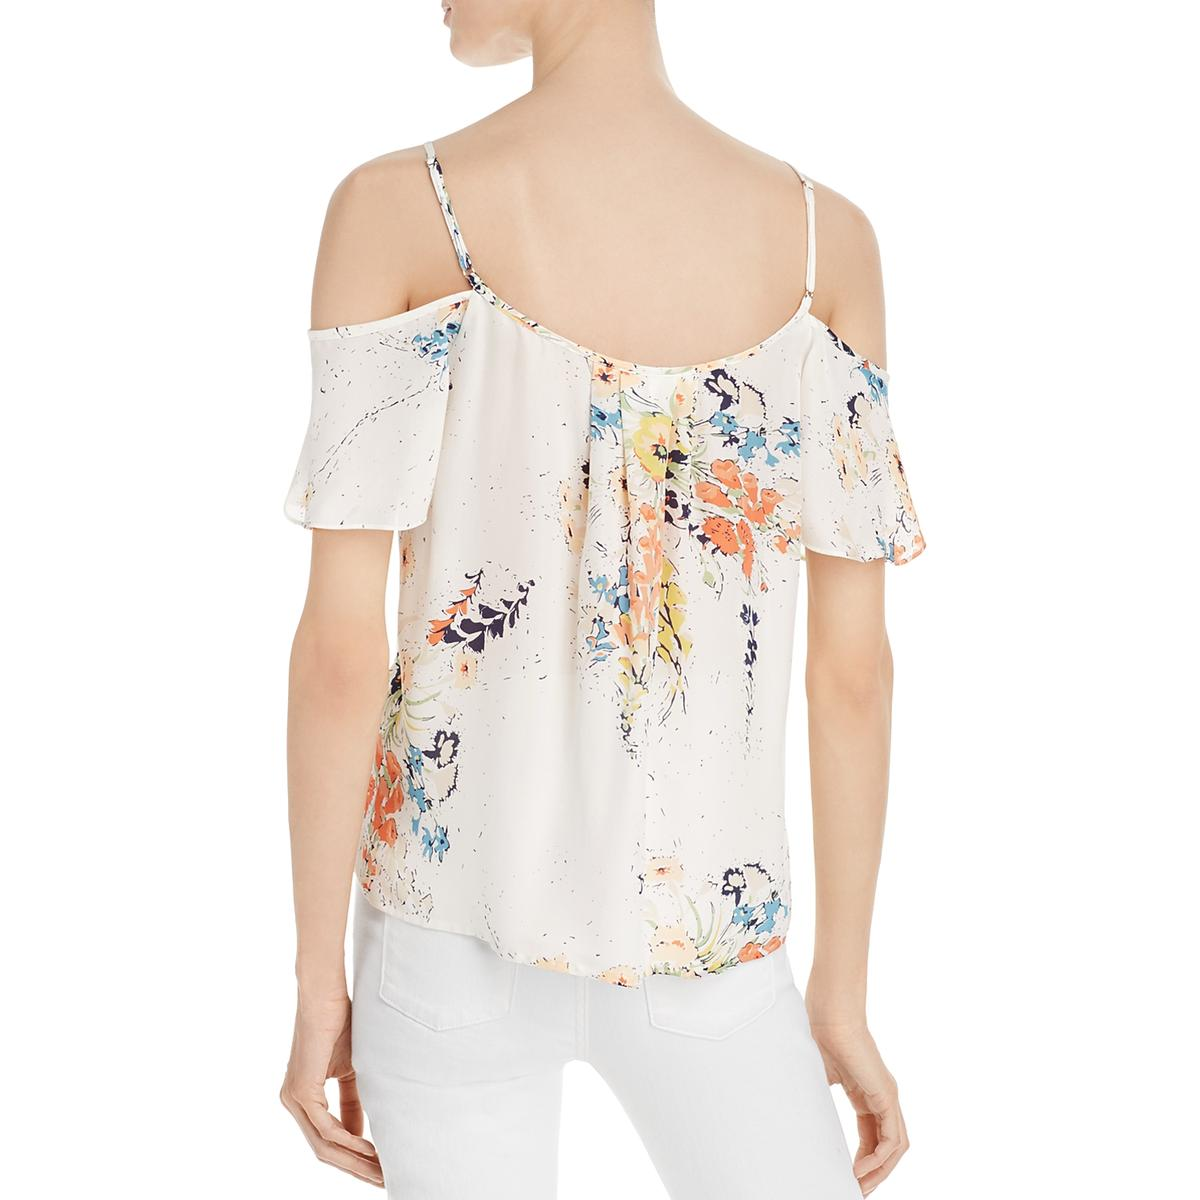 e9aaf94e09862f Joie Womens Adorlee Silk Printed Cold Shoulder Blouse Top BHFO 8675 ...